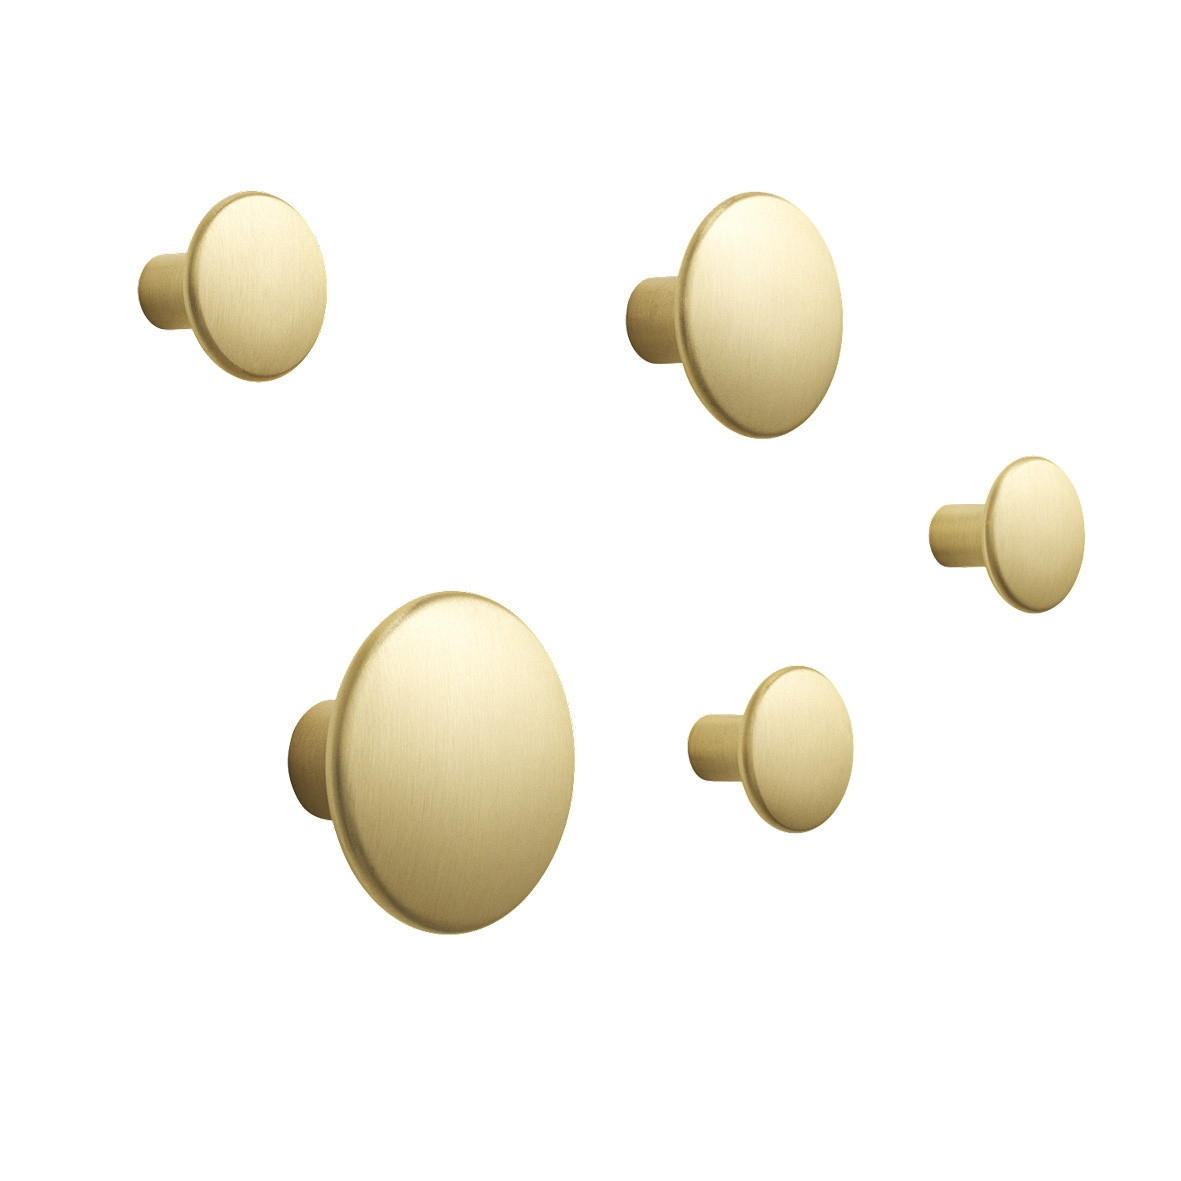 Muuto The Dots Brass Coat Hooks - Set of 5